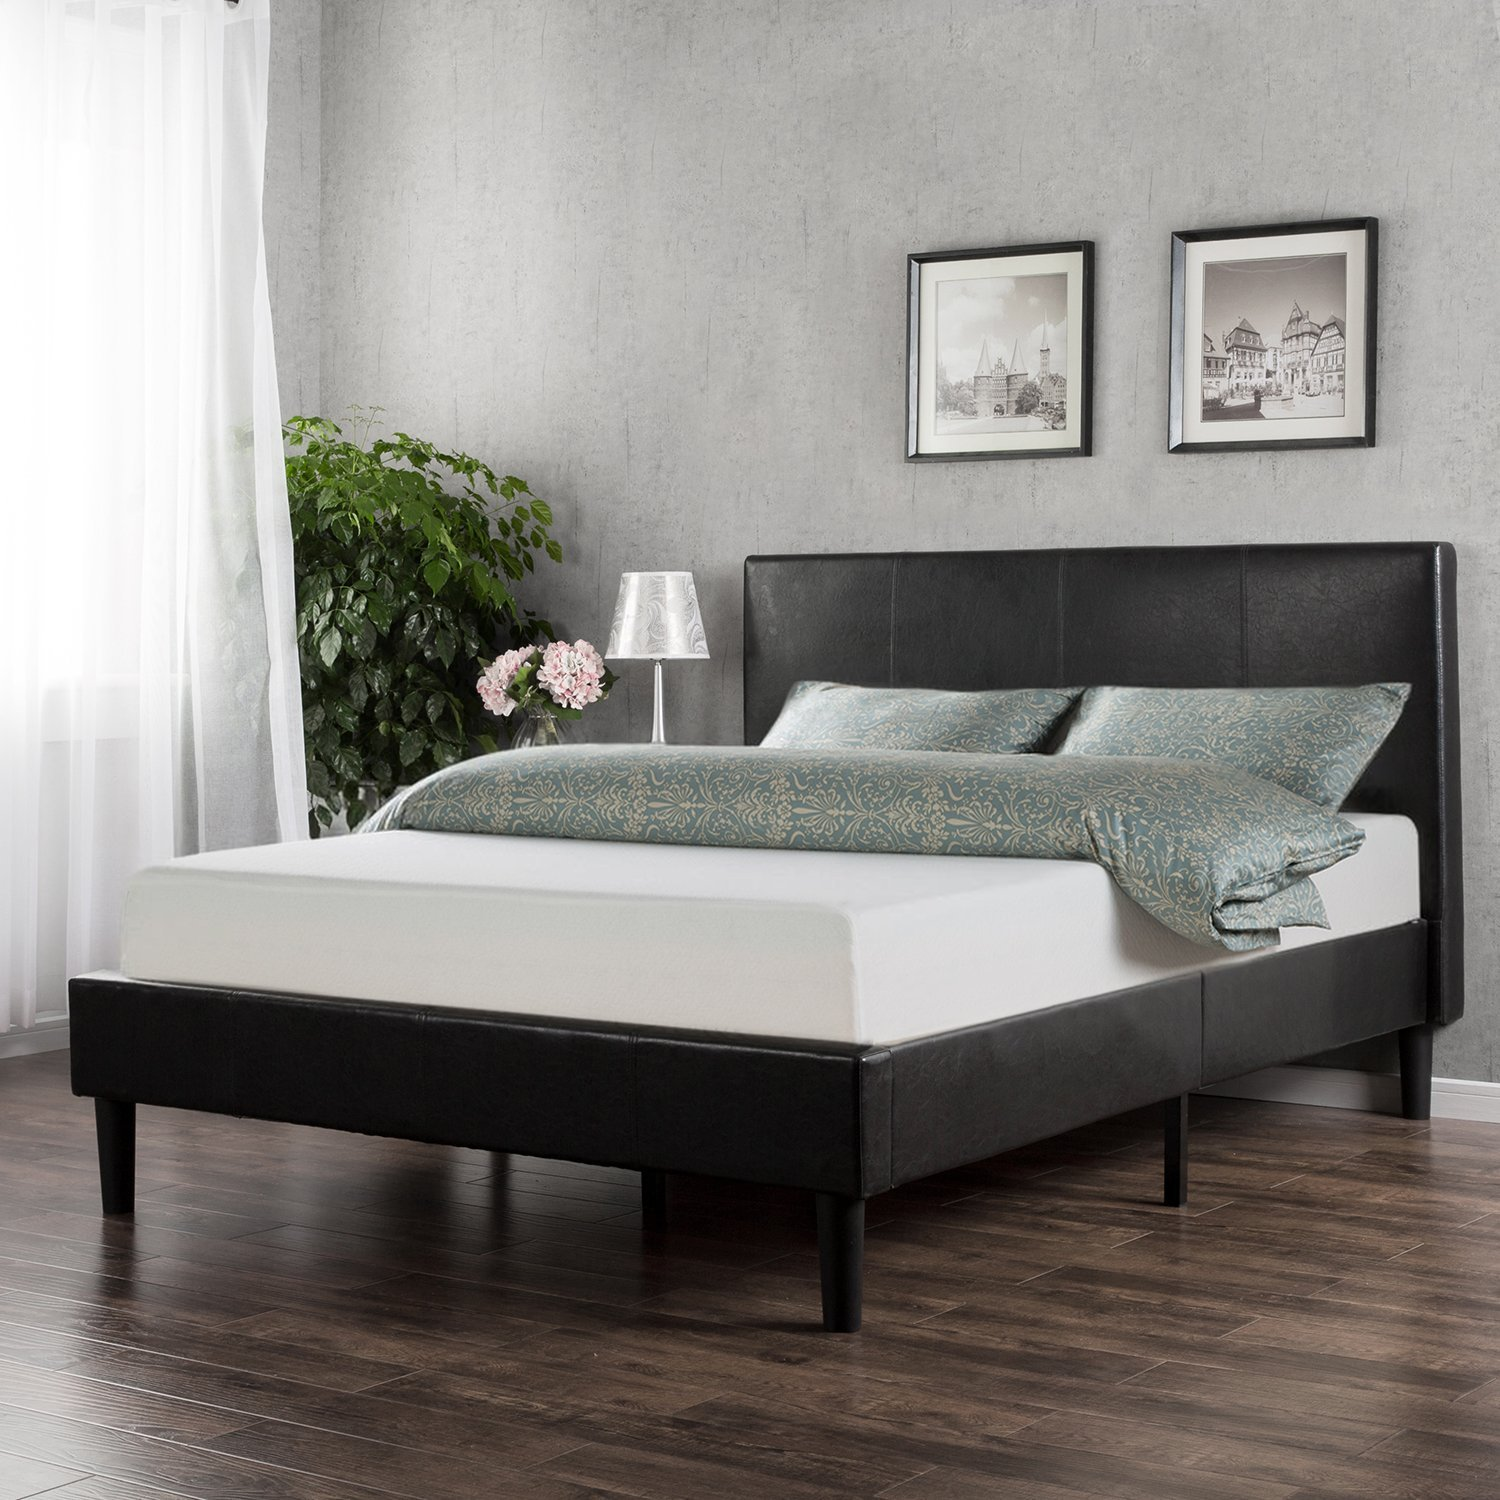 sleep master memory foam 10 inch mattress and faux leather platform bed set